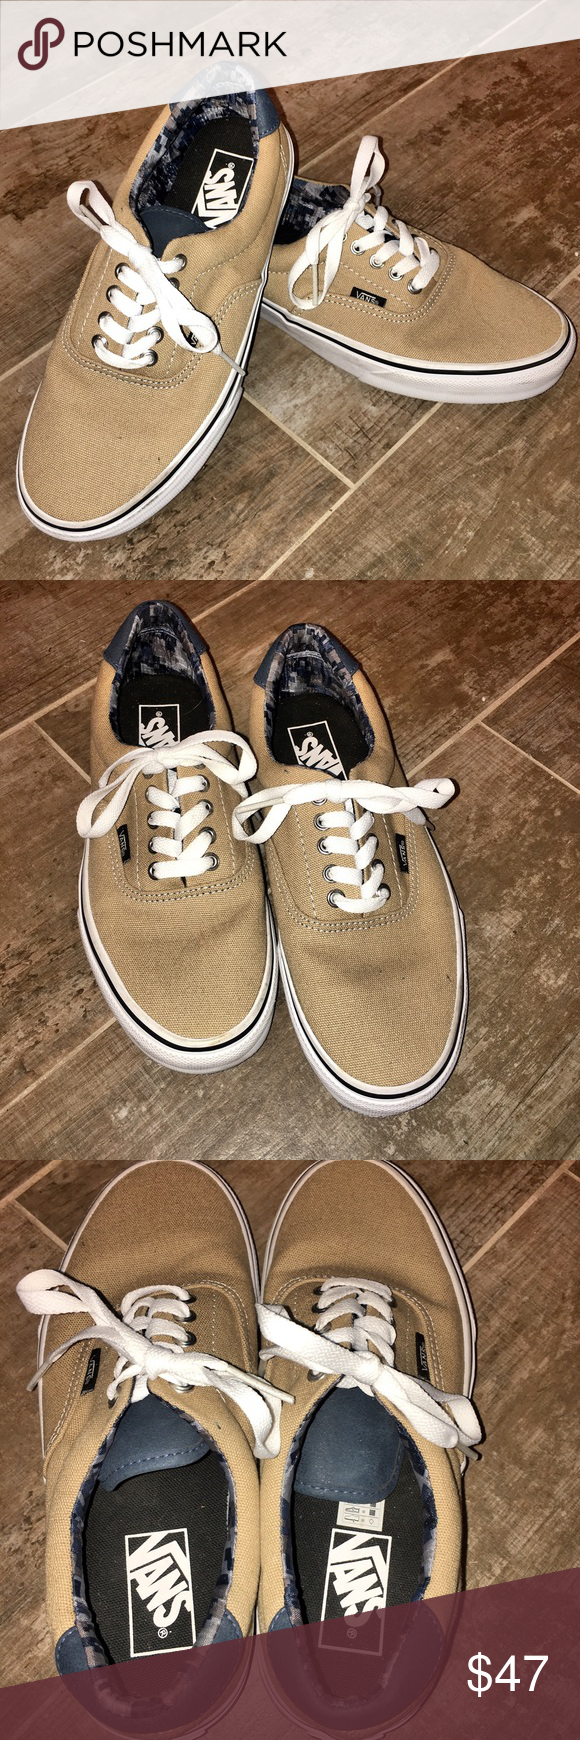 👟Vans Era 59 Shoes Men s Size 7 Women s Size 8.5 d89714882bb5